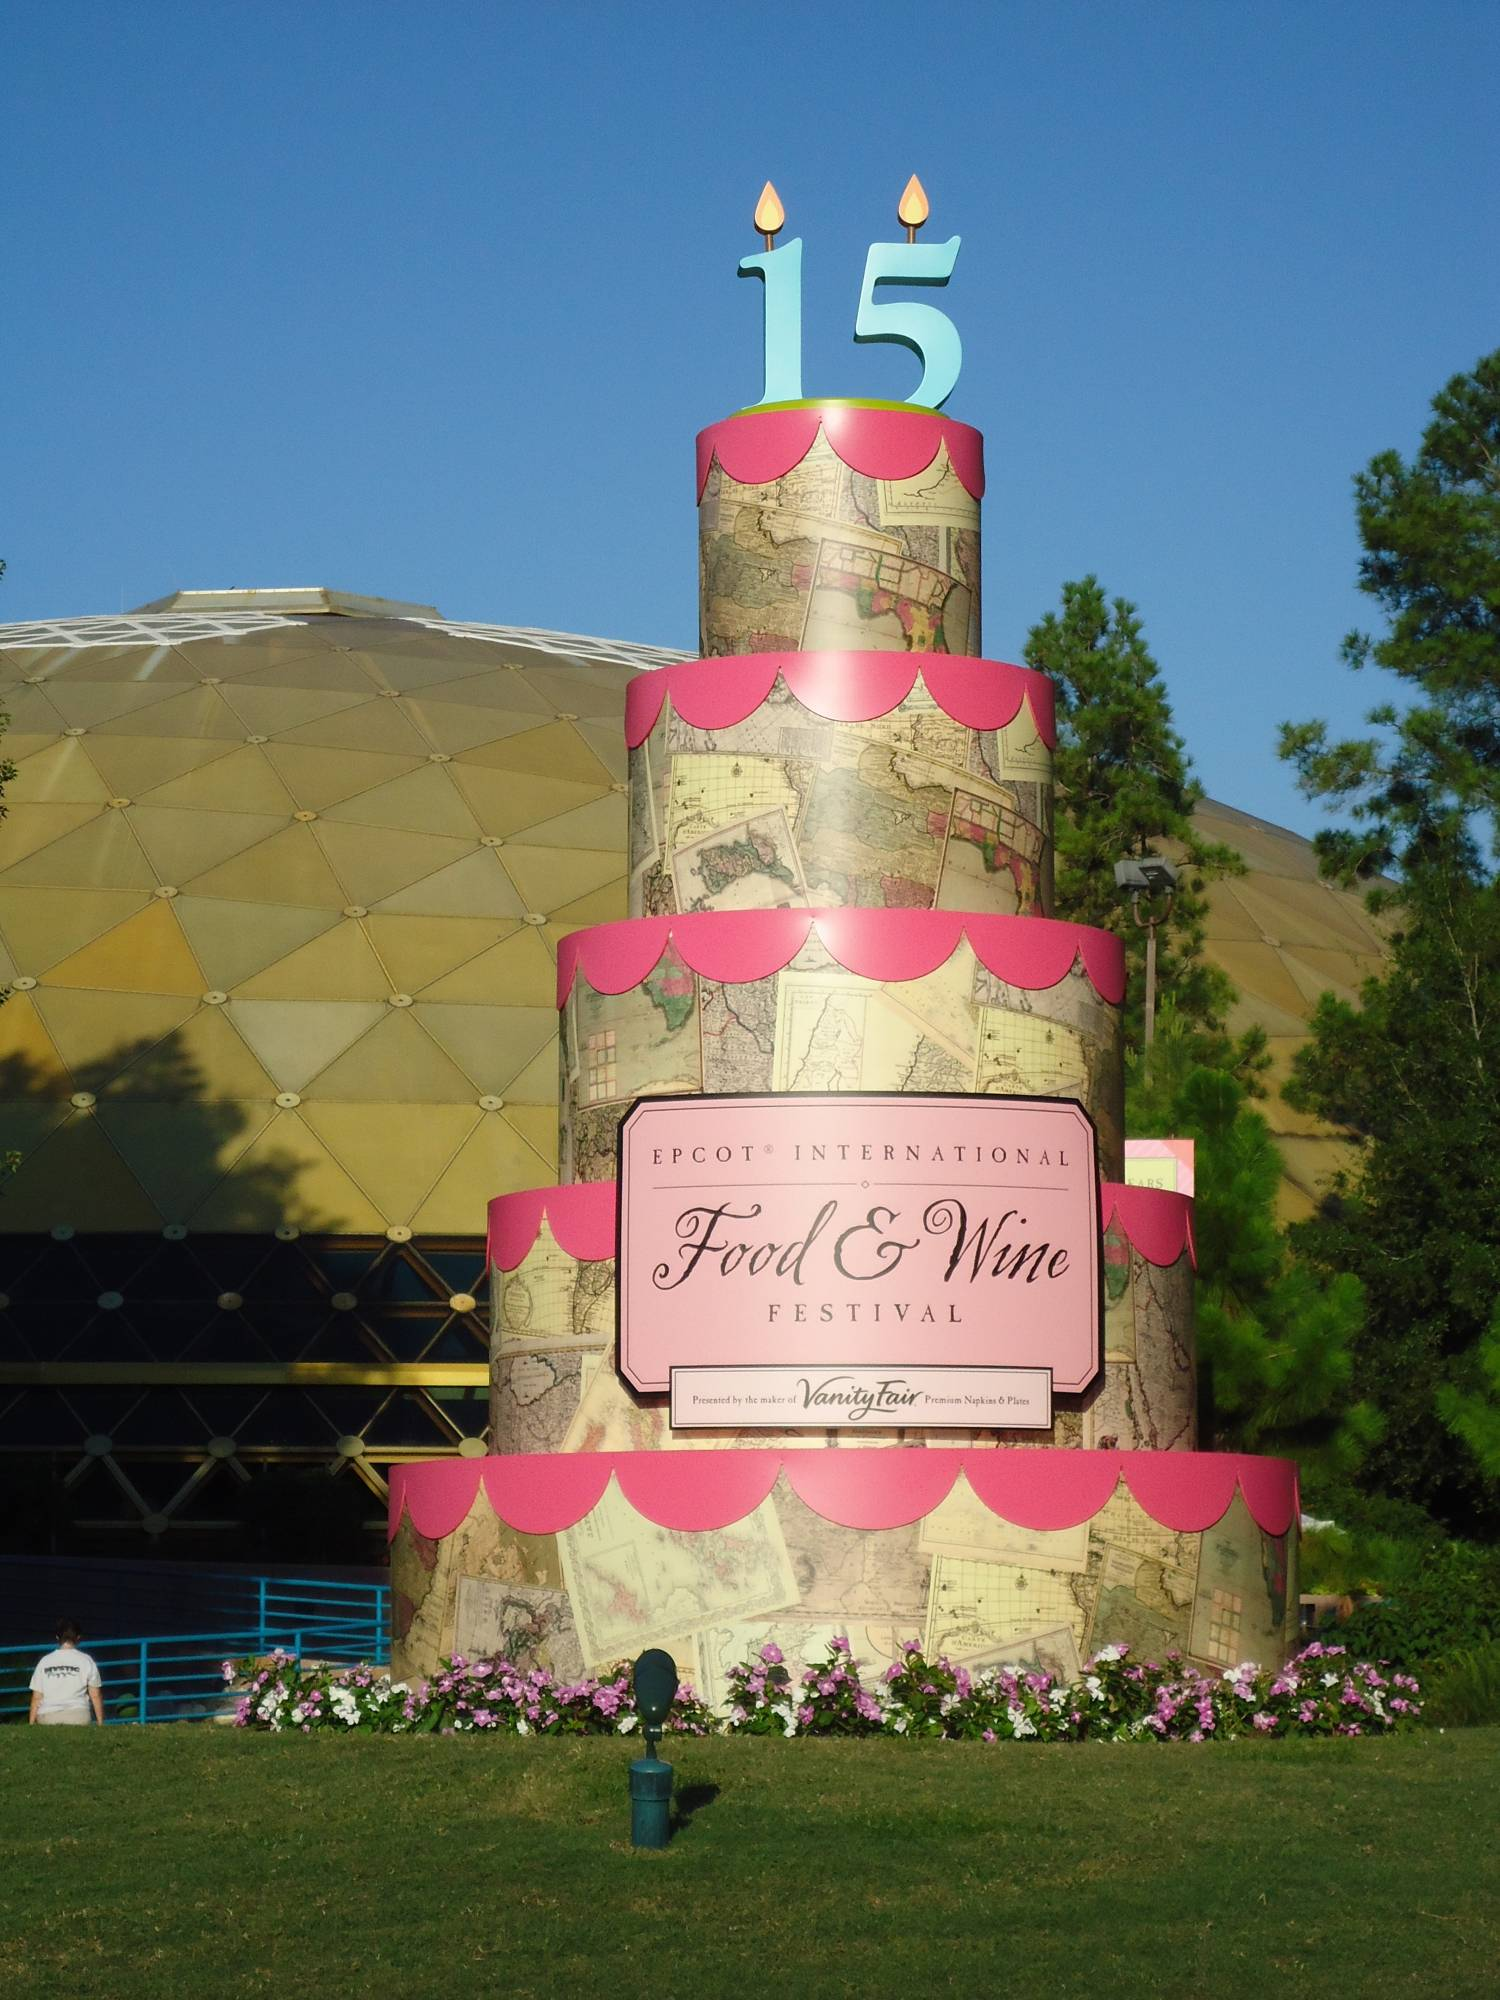 Food and Wine Festival Cake at Epcot